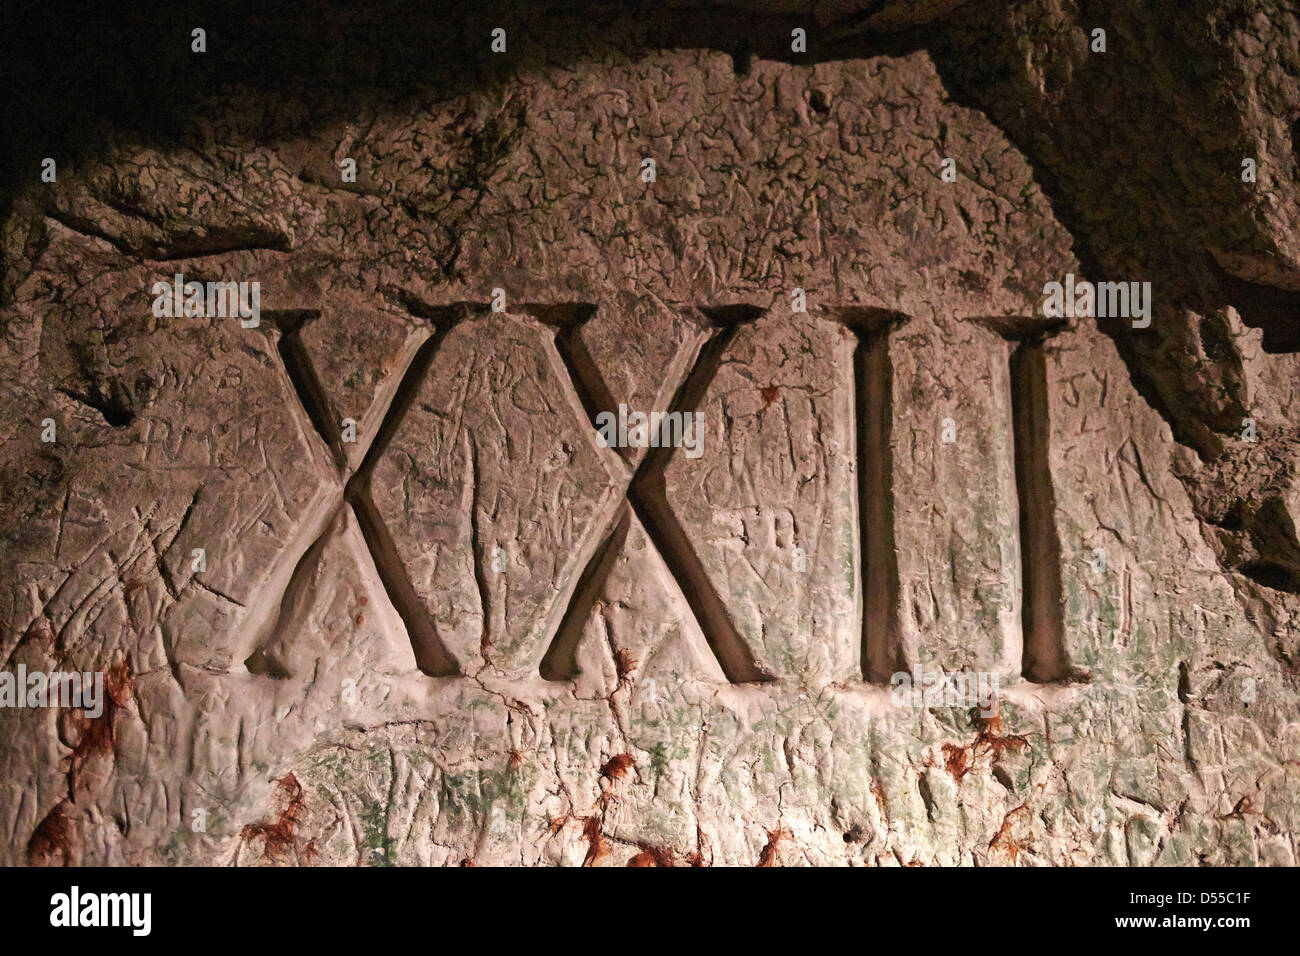 Carving in the Hell Fire Caves in West Wycombe Buckinghamshire - Stock Image